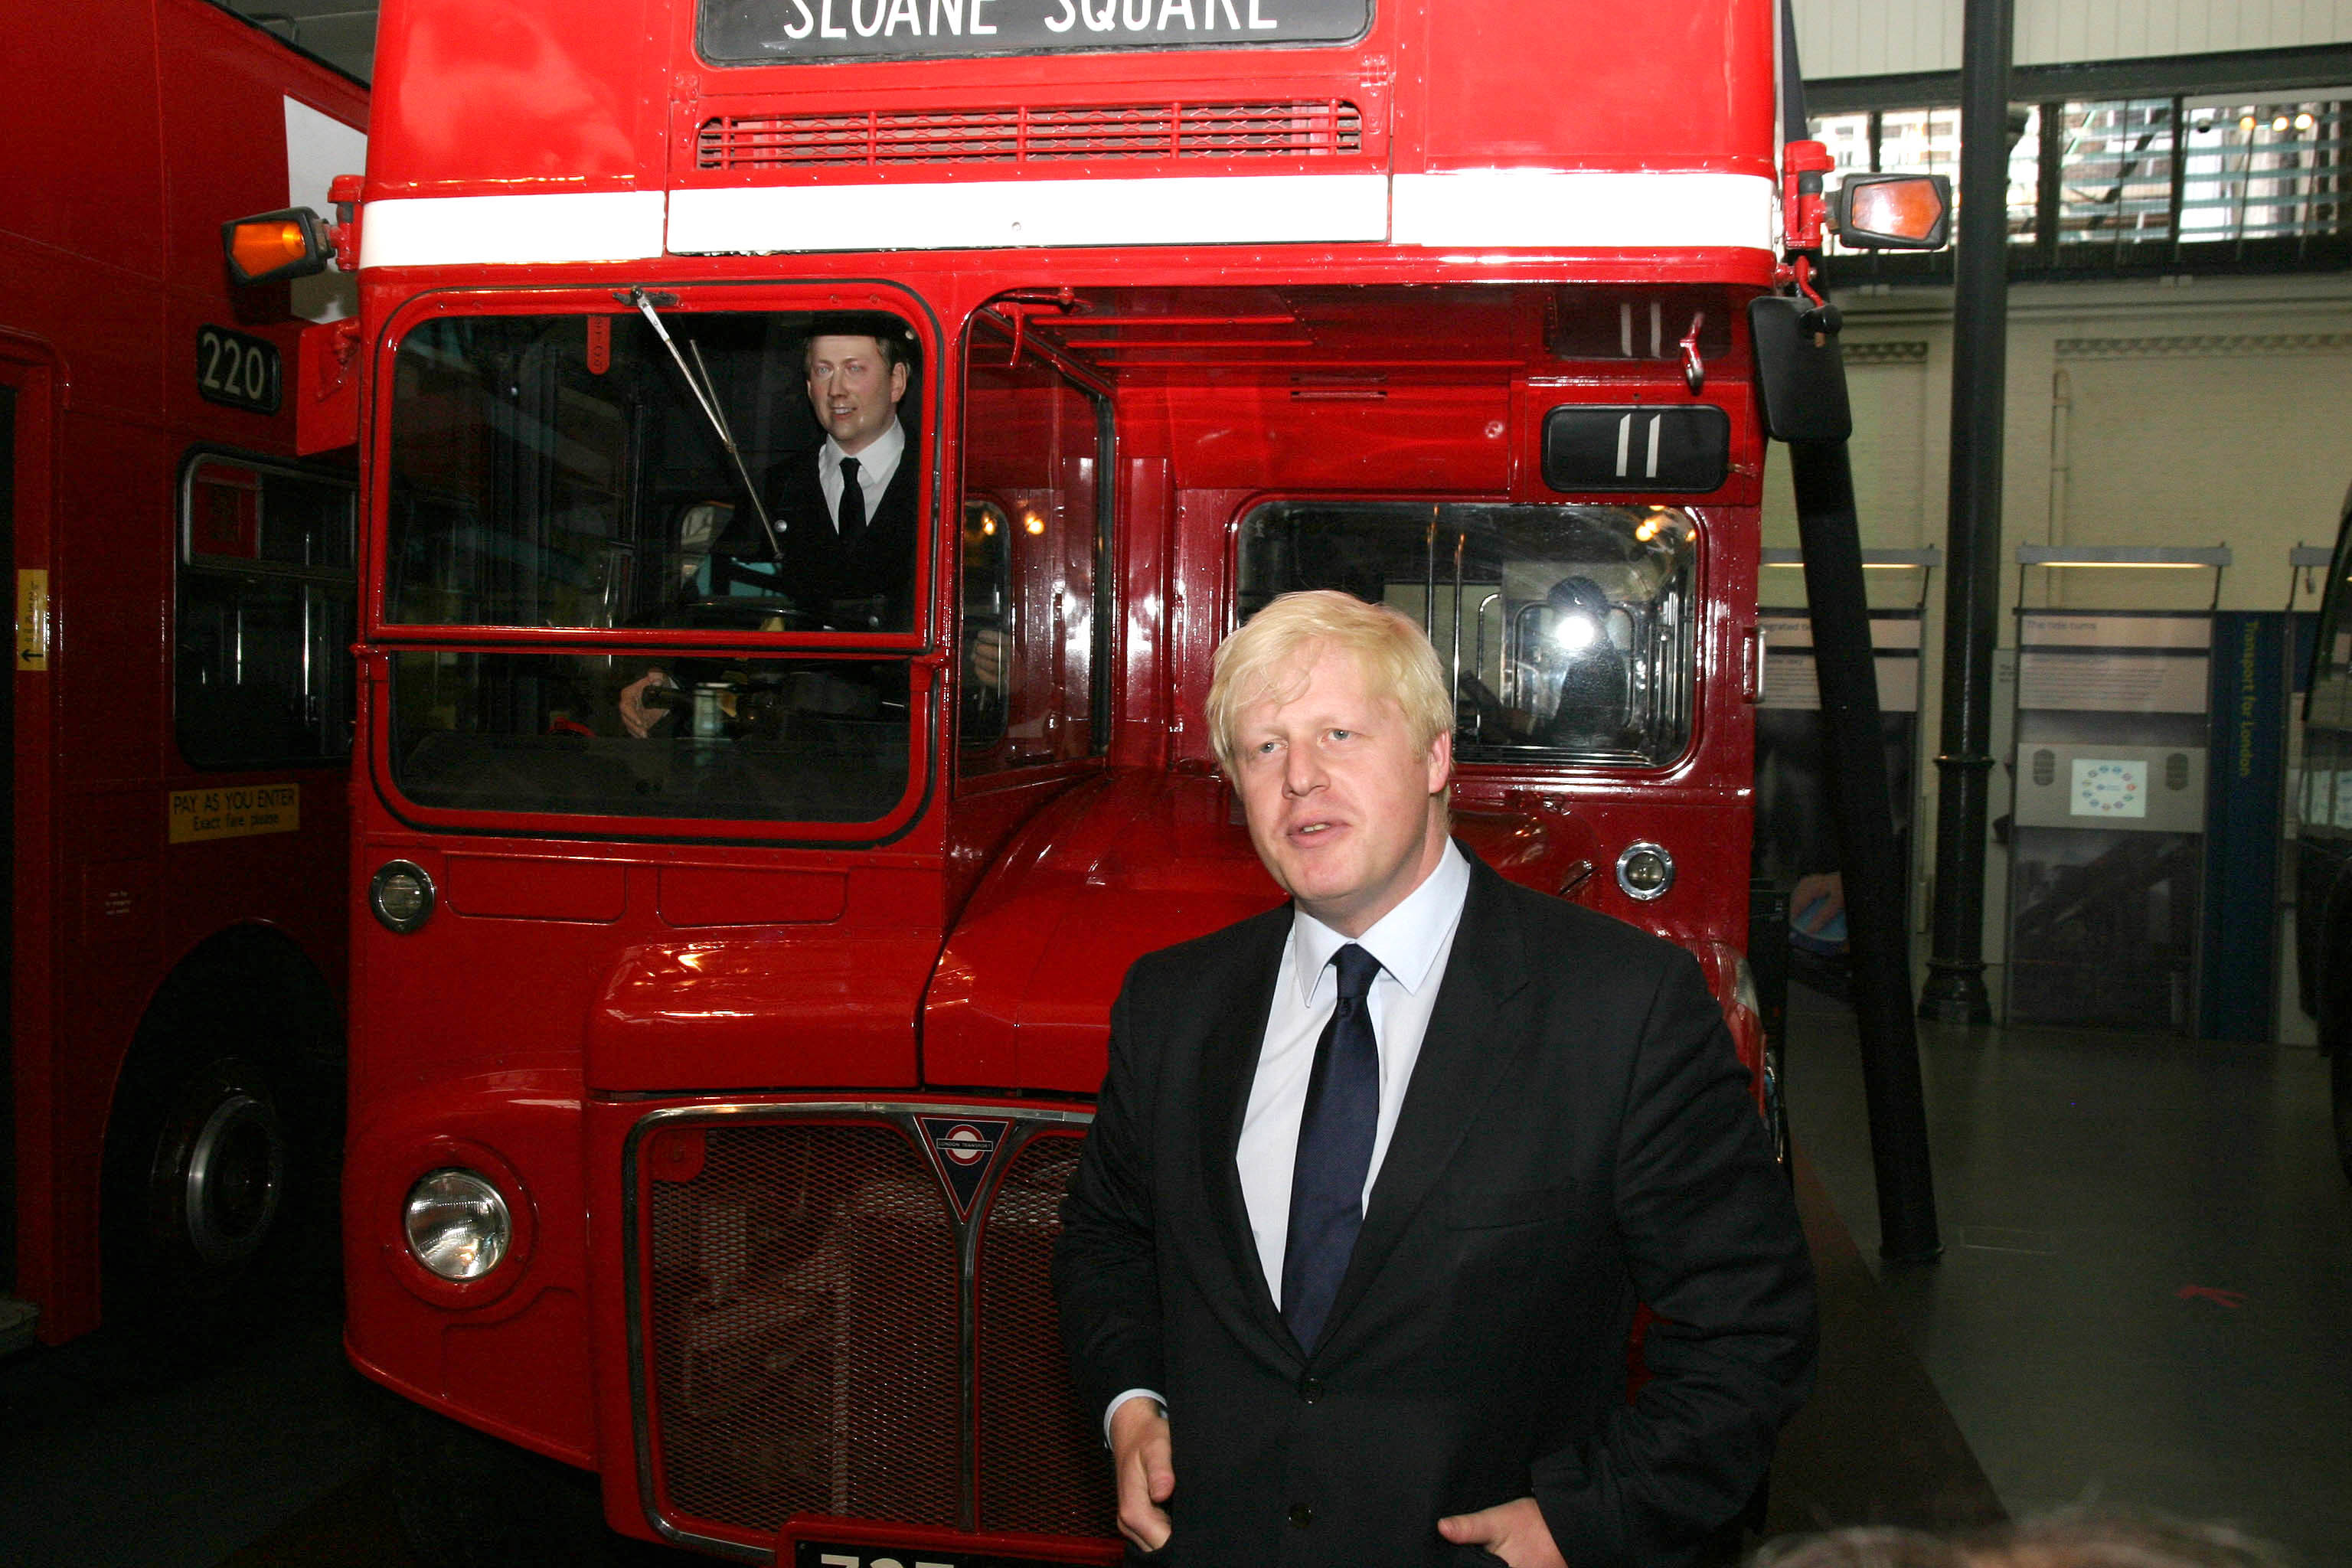 """Mayor of London, Boris Johnson stands in front of a London Transport Routemaster bus, at the London Transport Museum in central London. London mayor Boris Johnson launched a competition today to design a possible new """"green"""" replacement for the """"much missed"""" jump-on, jump-off double-decker Routemaster bus. The red driver-and-conductor Routemasters were withdrawn from regular service in 2005."""